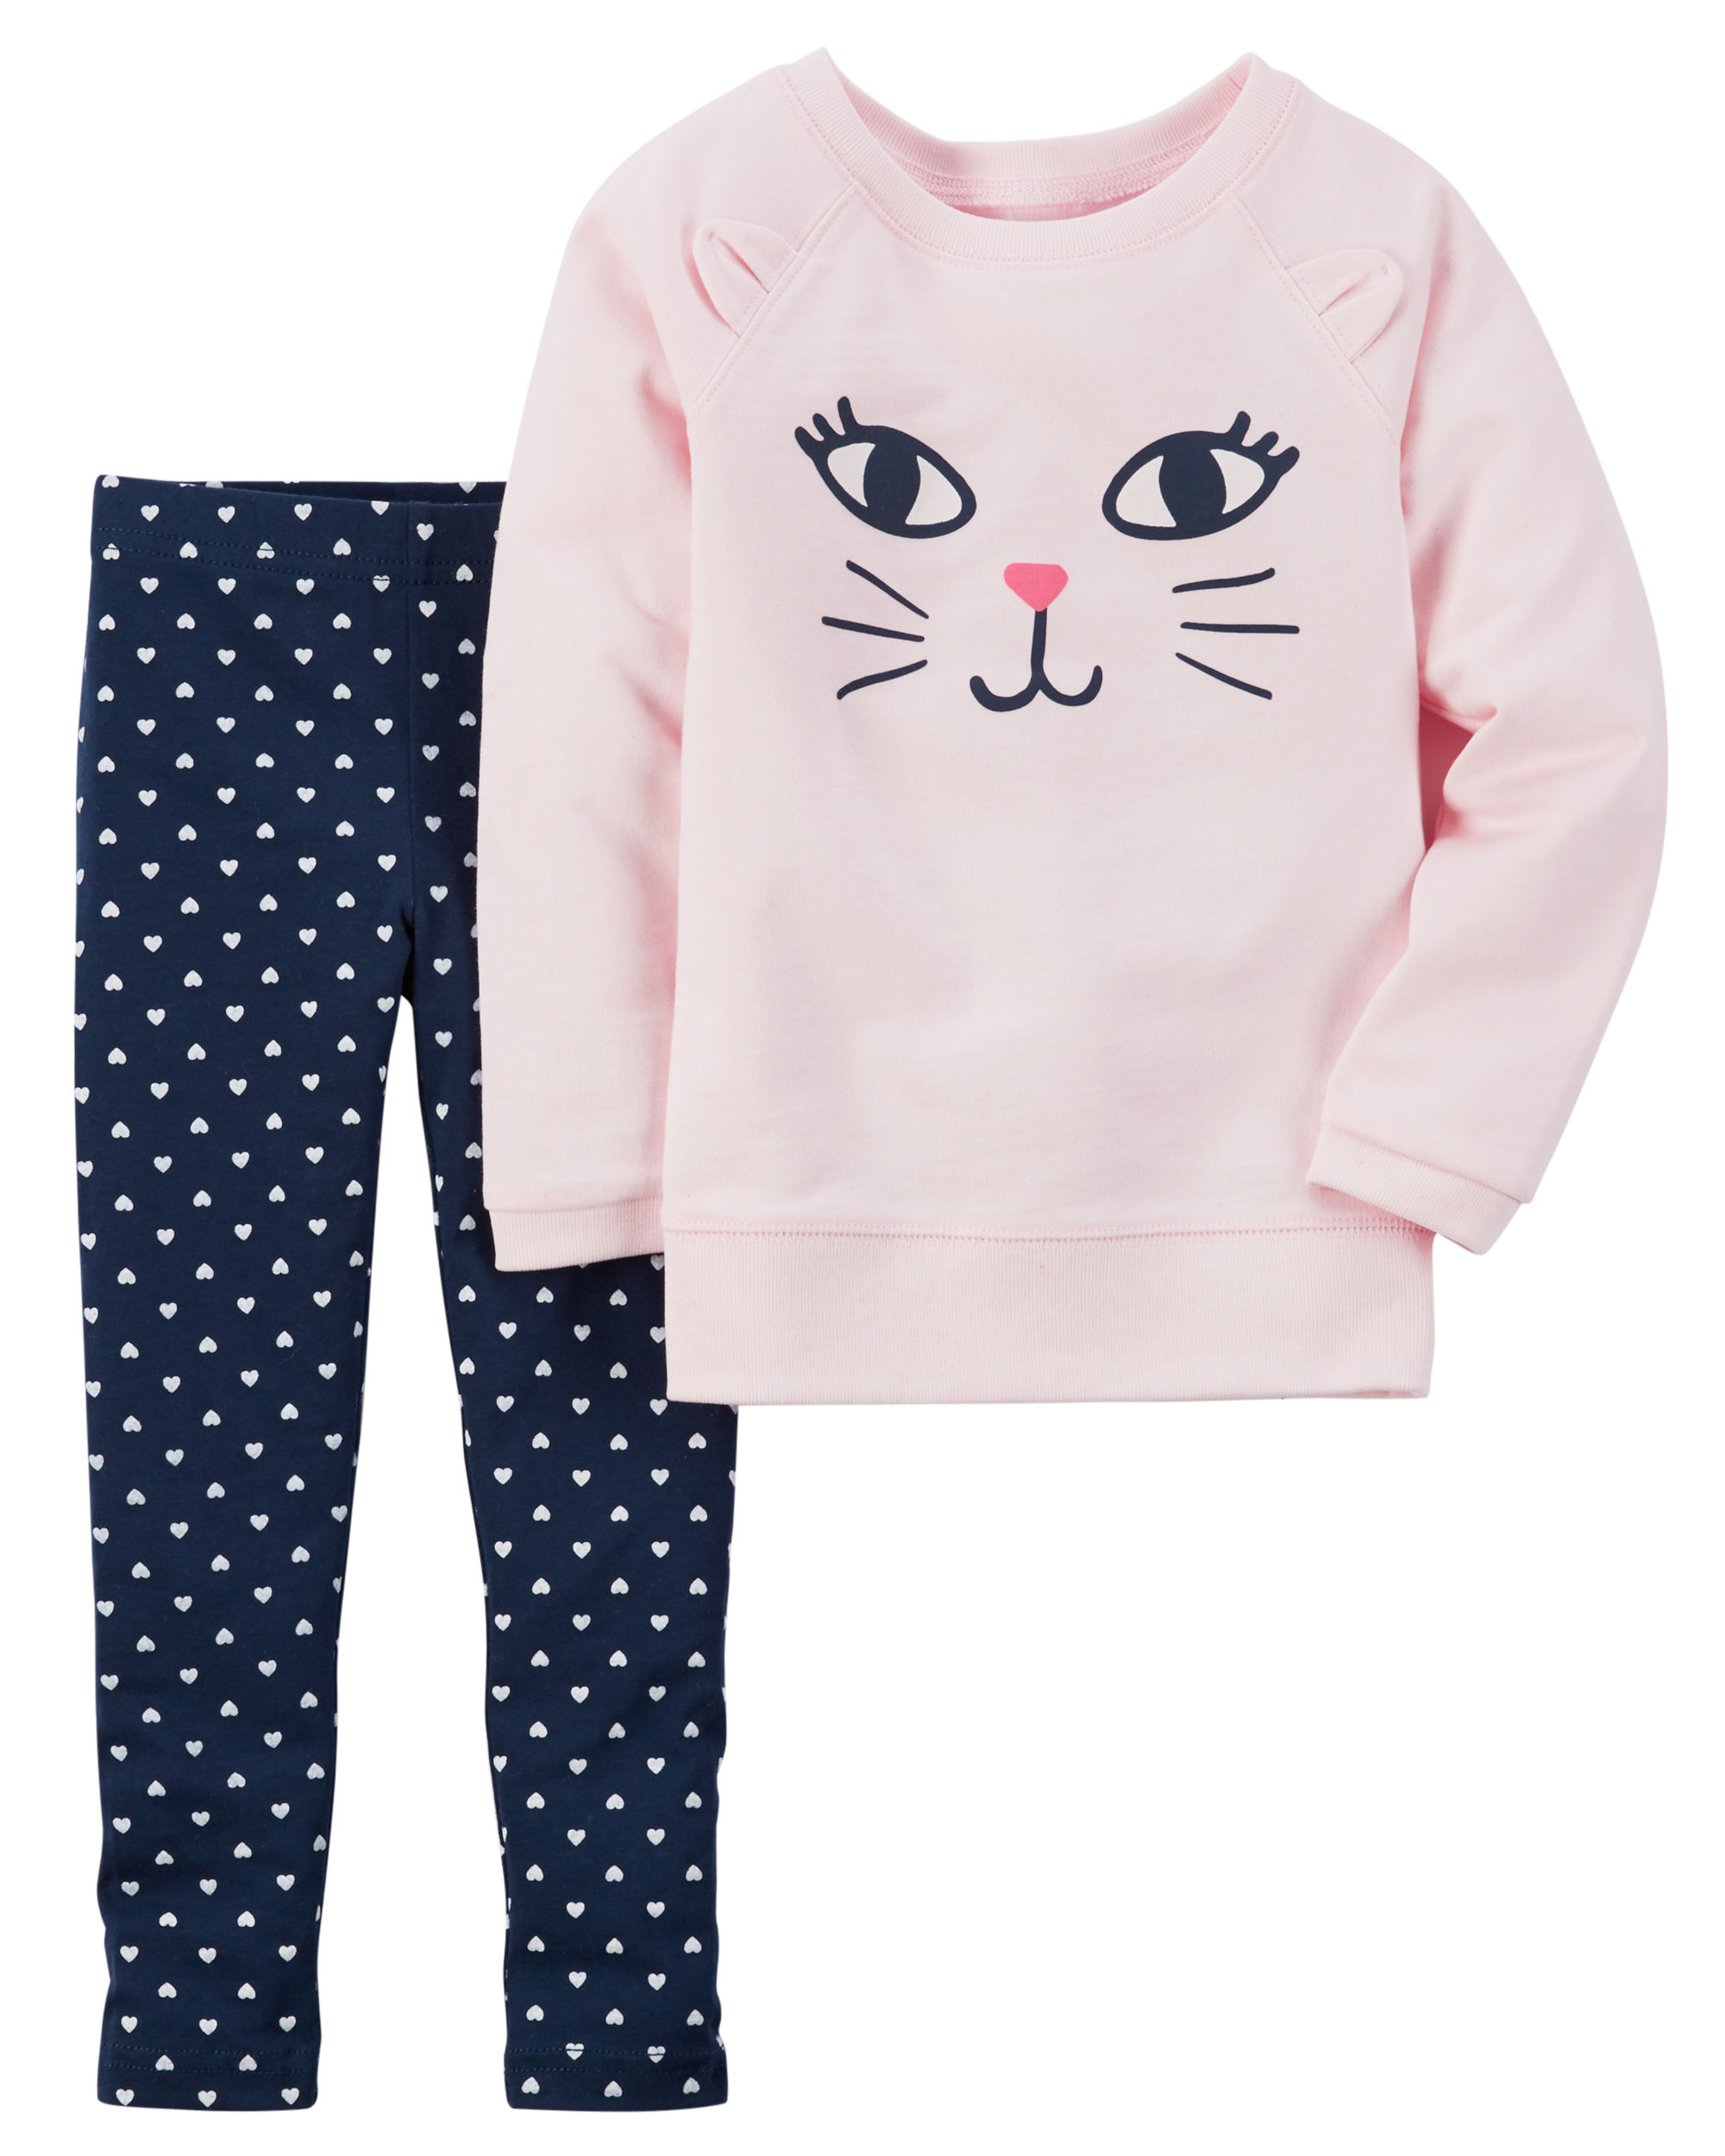 French Terry Top & Legging Set - $14.40